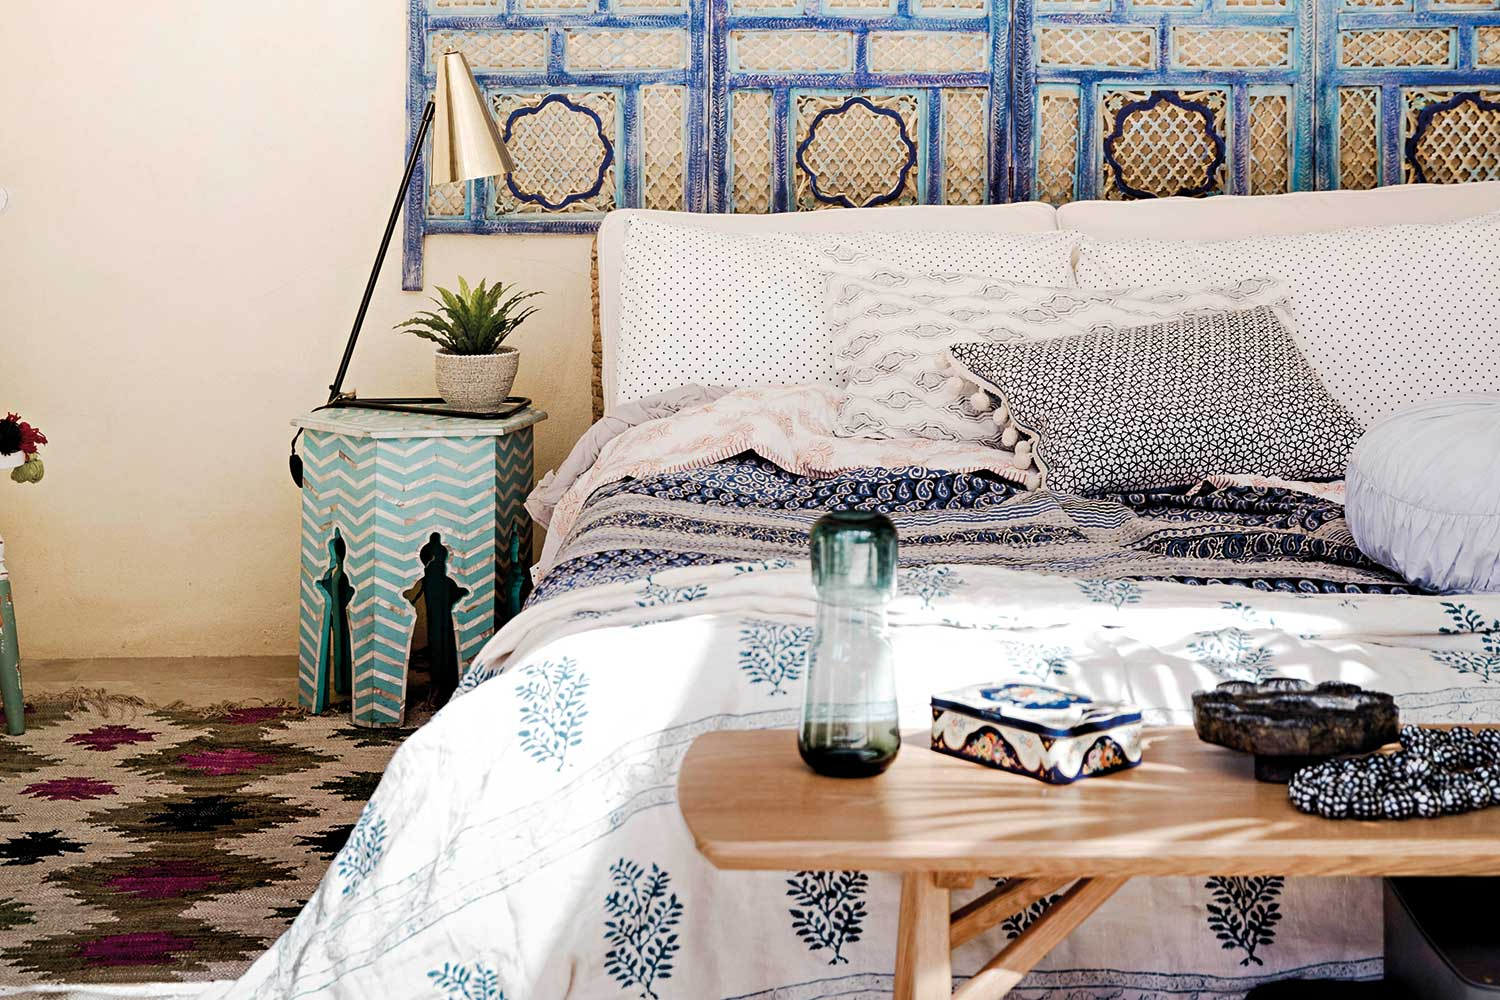 The Ultimate Cheat Sheet For How To Get A Boho Bedroom | Home Beautiful  Magazine Australia